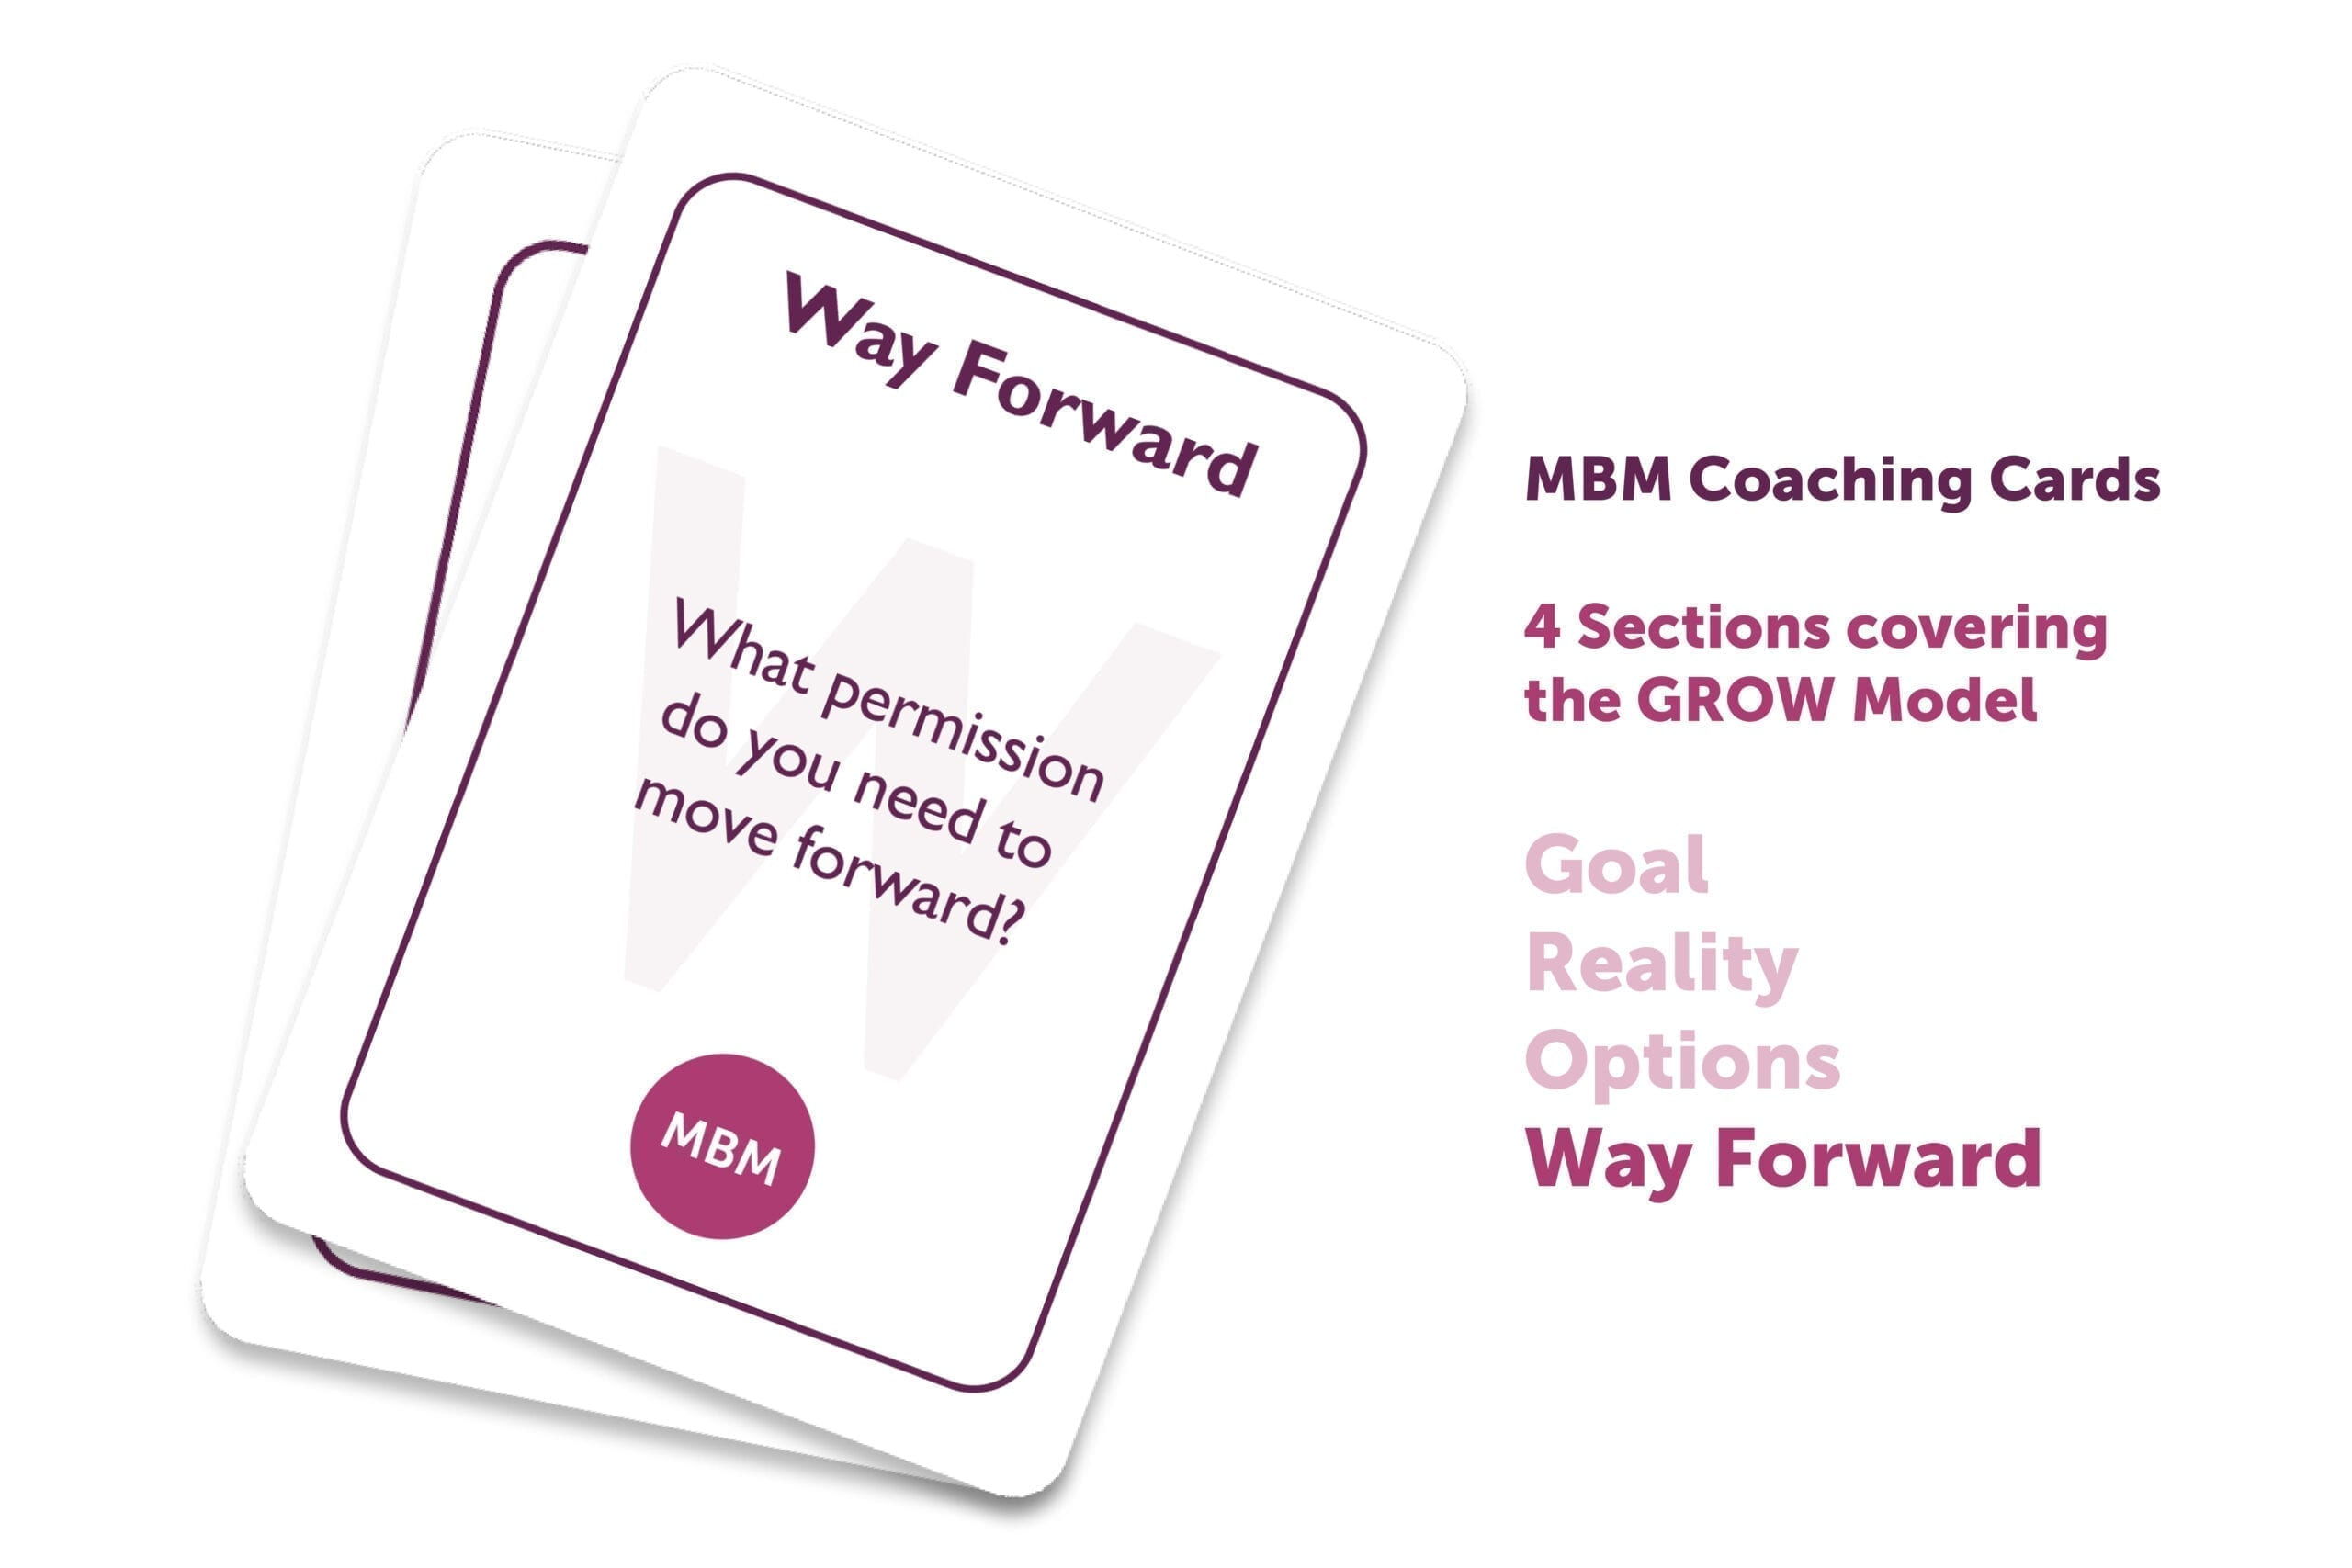 2 GROW coaching cards one on top of another with Way Forward as the title